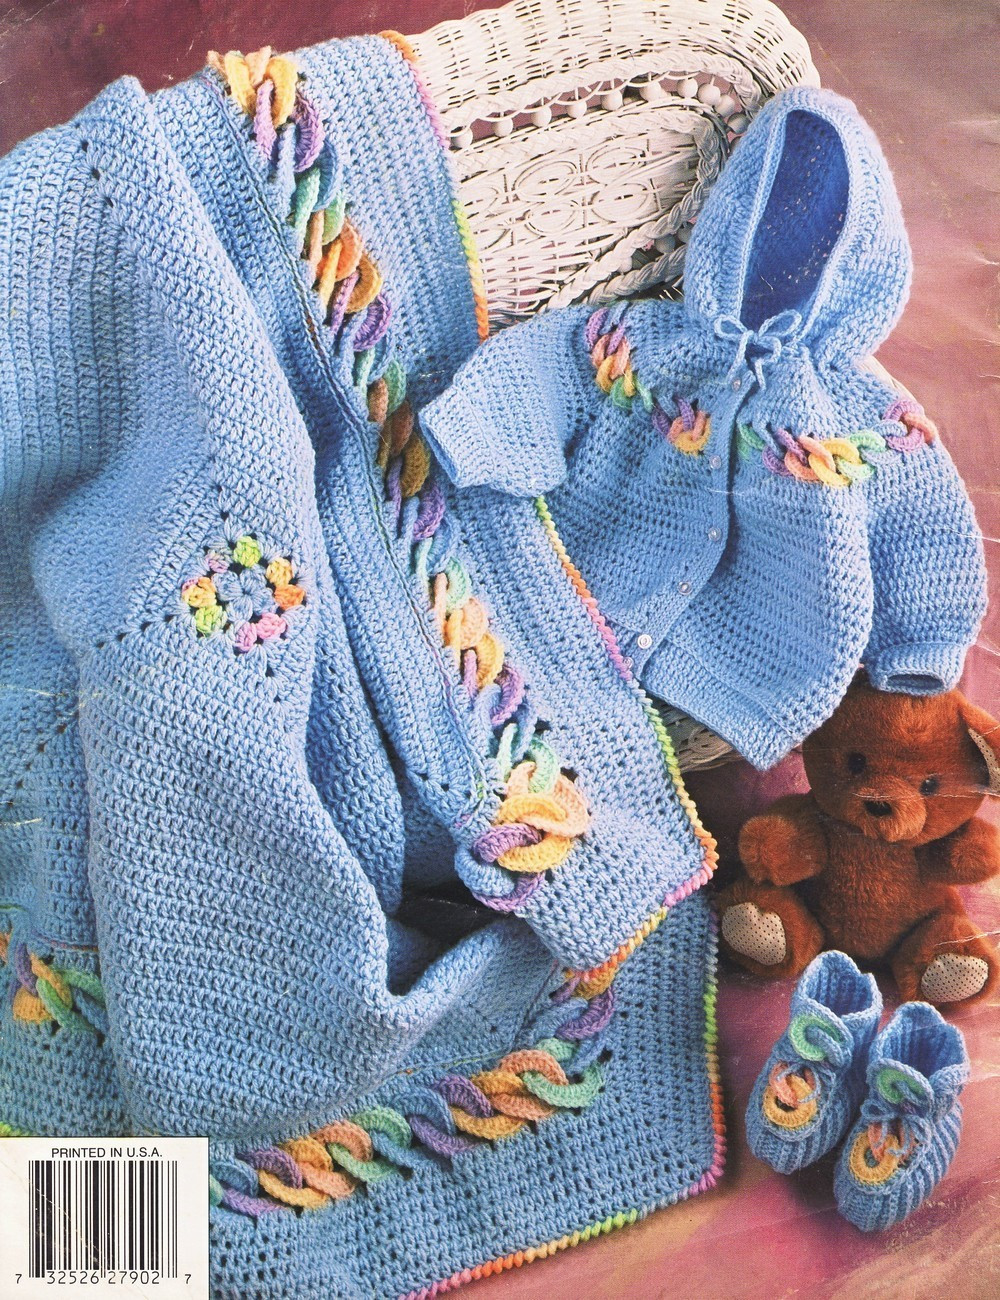 Baby Layette Crochet Patterns Fresh Baby Rings Layette Crochet Patterns Annies attic Boy Girl Of Wonderful 45 Pictures Baby Layette Crochet Patterns